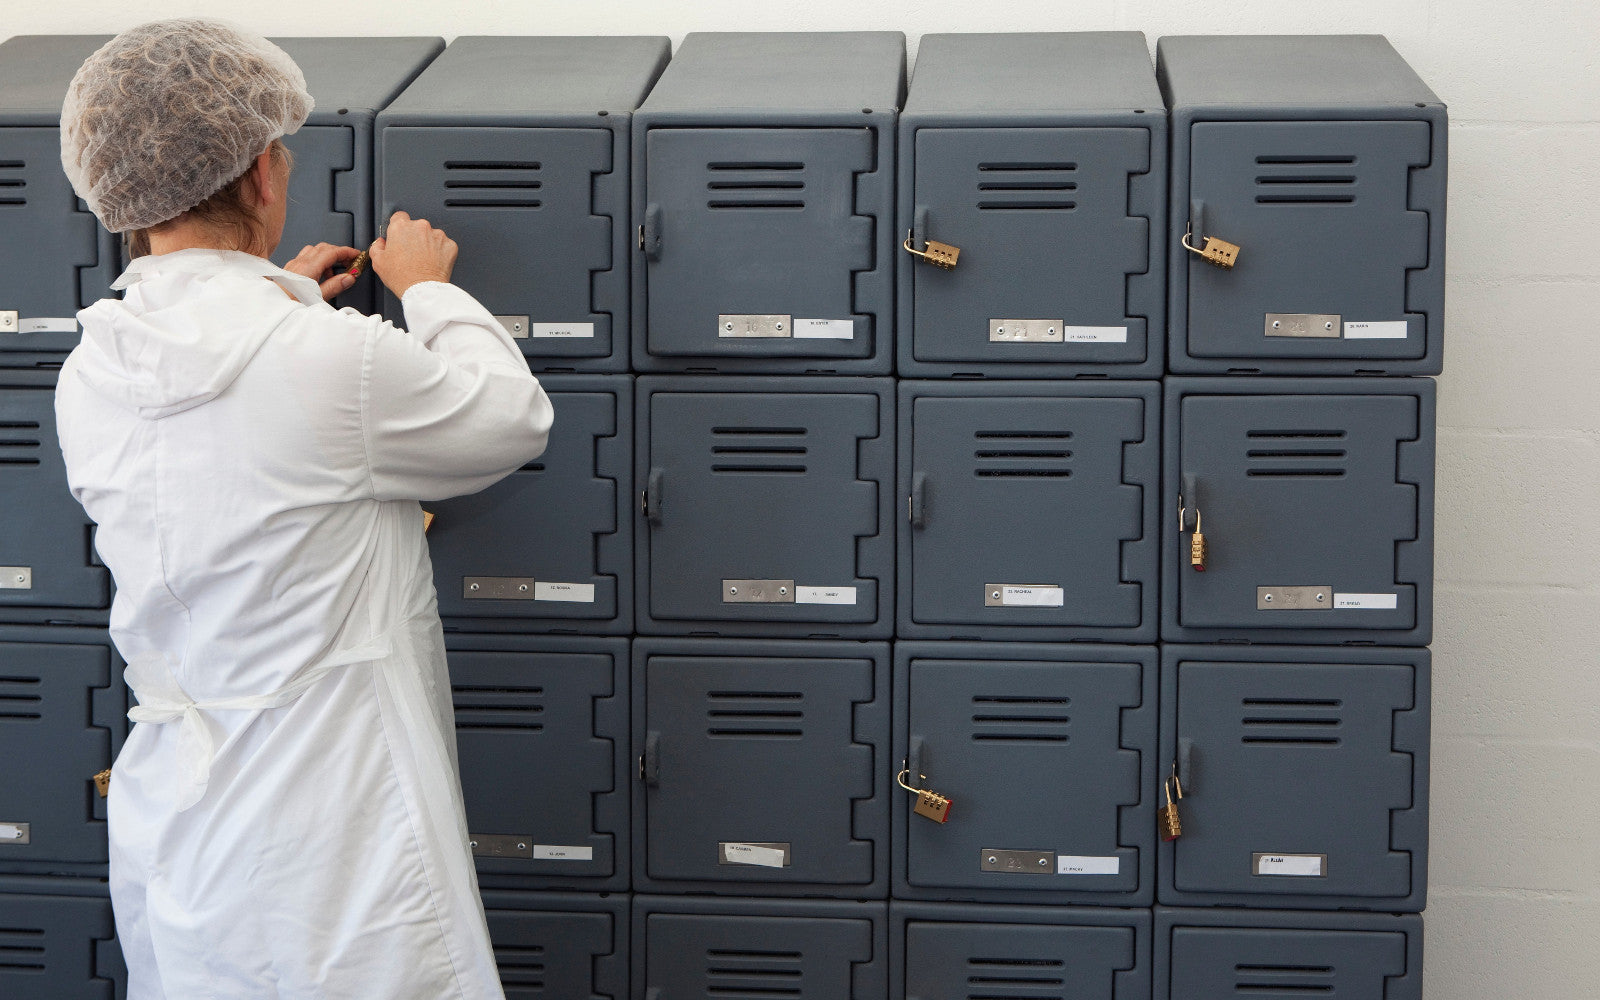 Factory worker in front of grey plastic food lockers